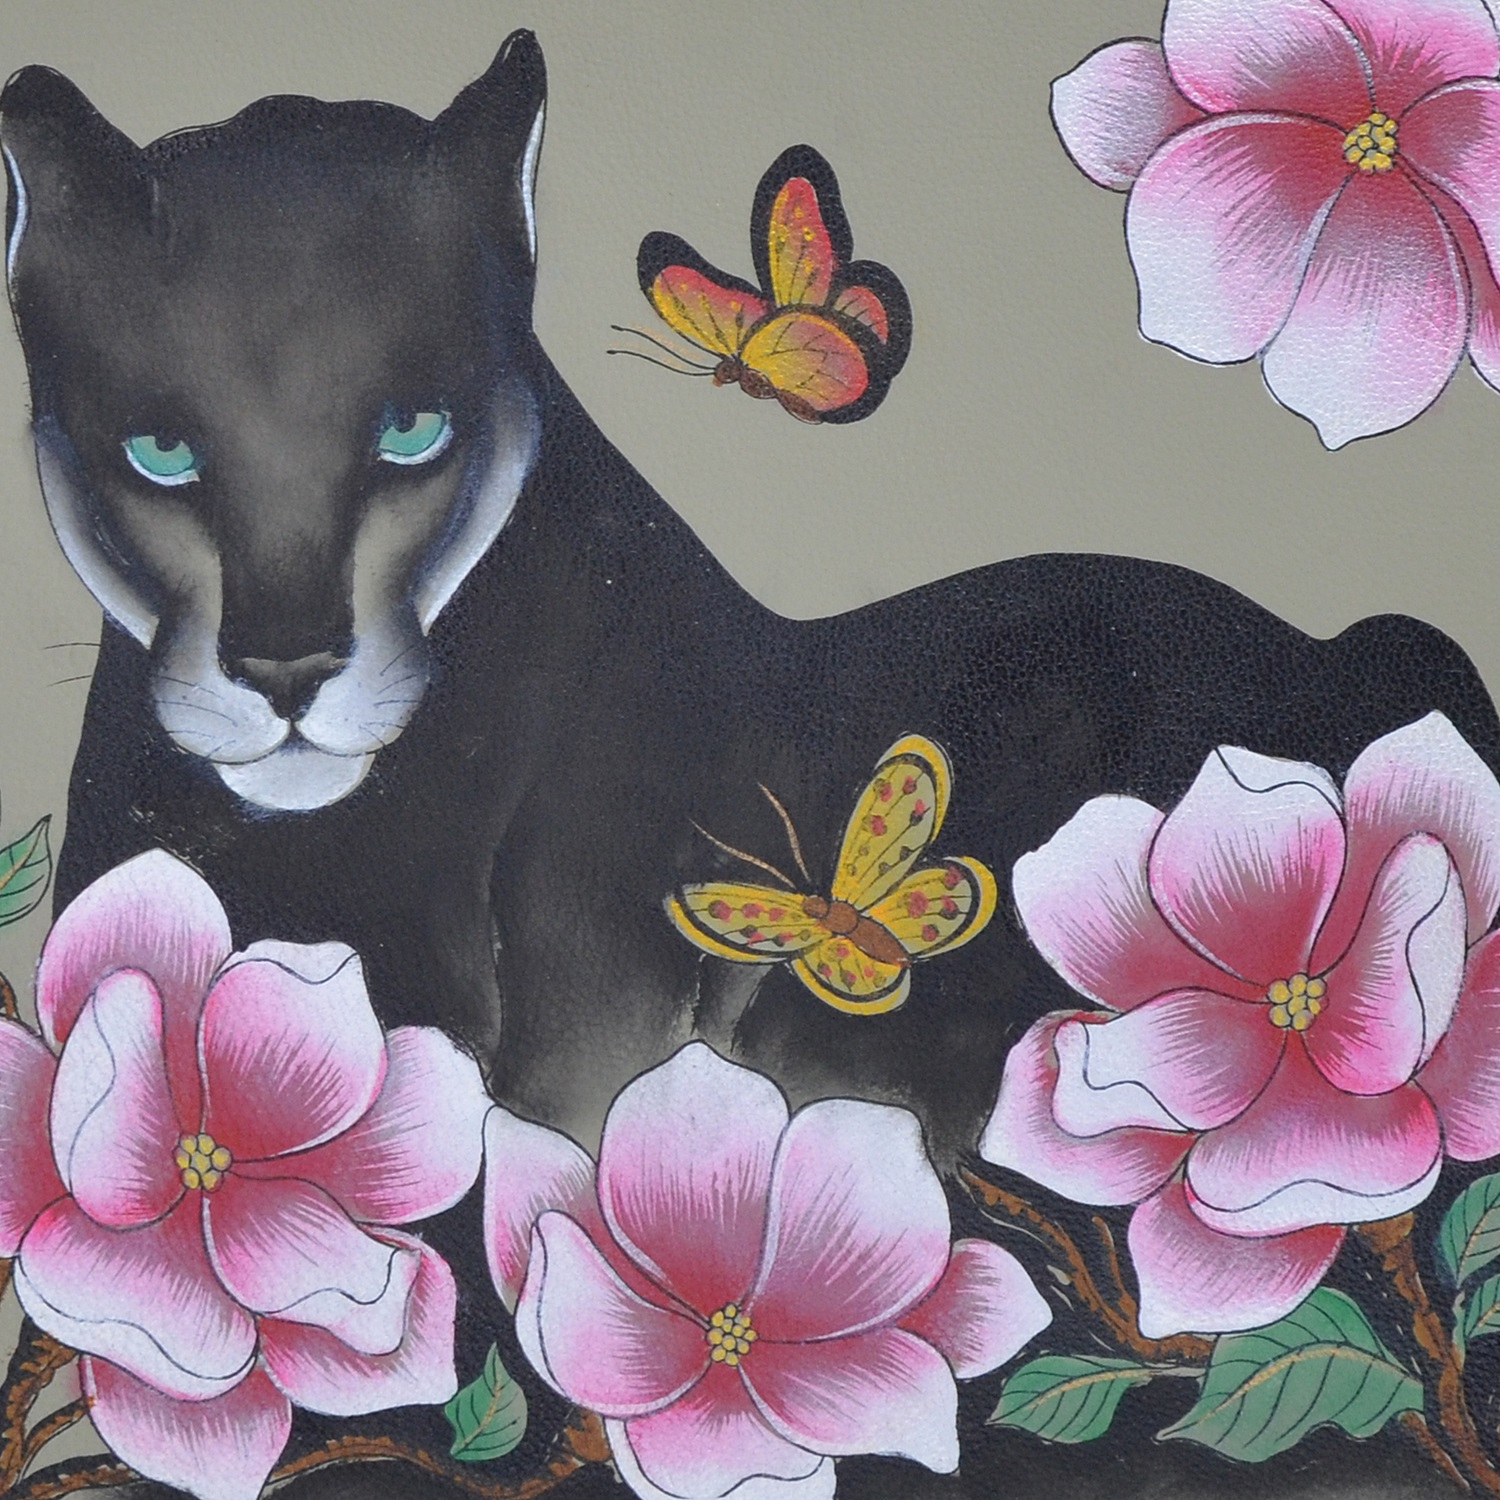 Panther, forest